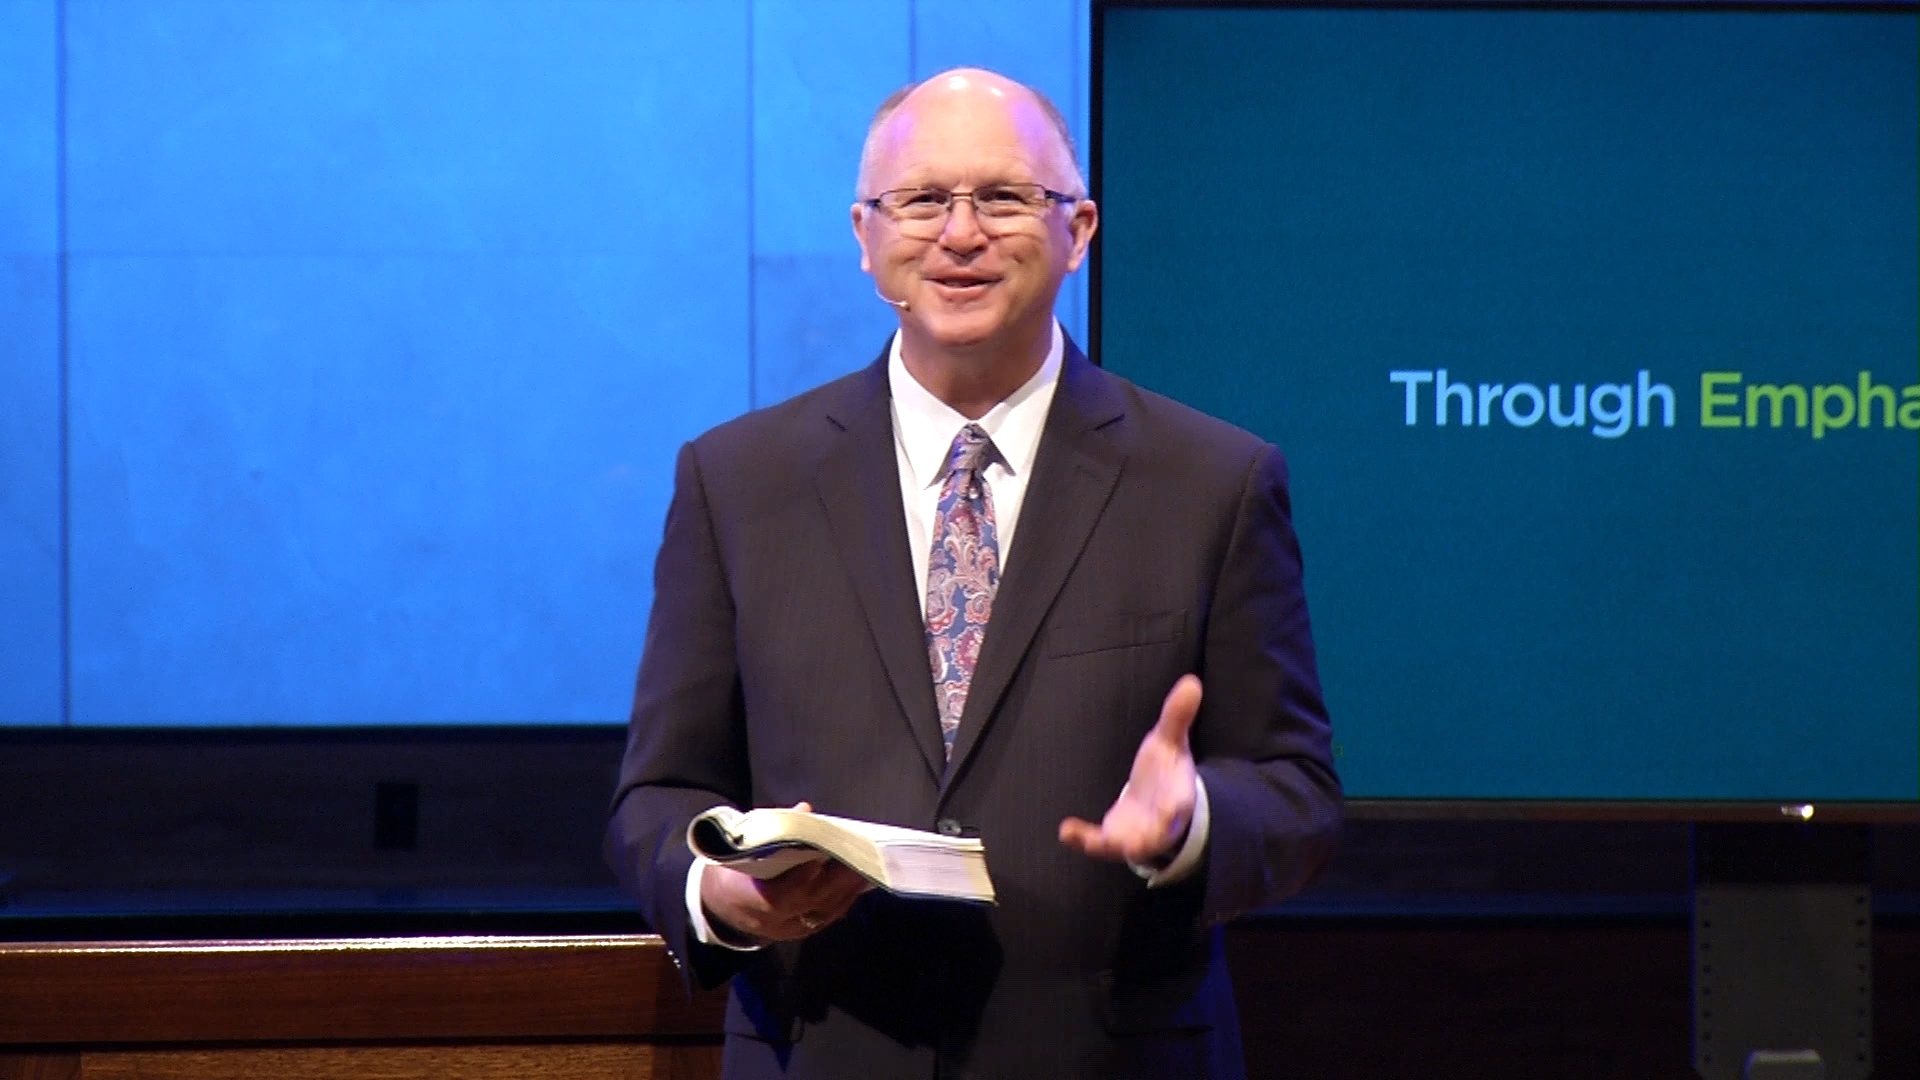 Pastor Paul Chappell: Becoming a Gracious Family